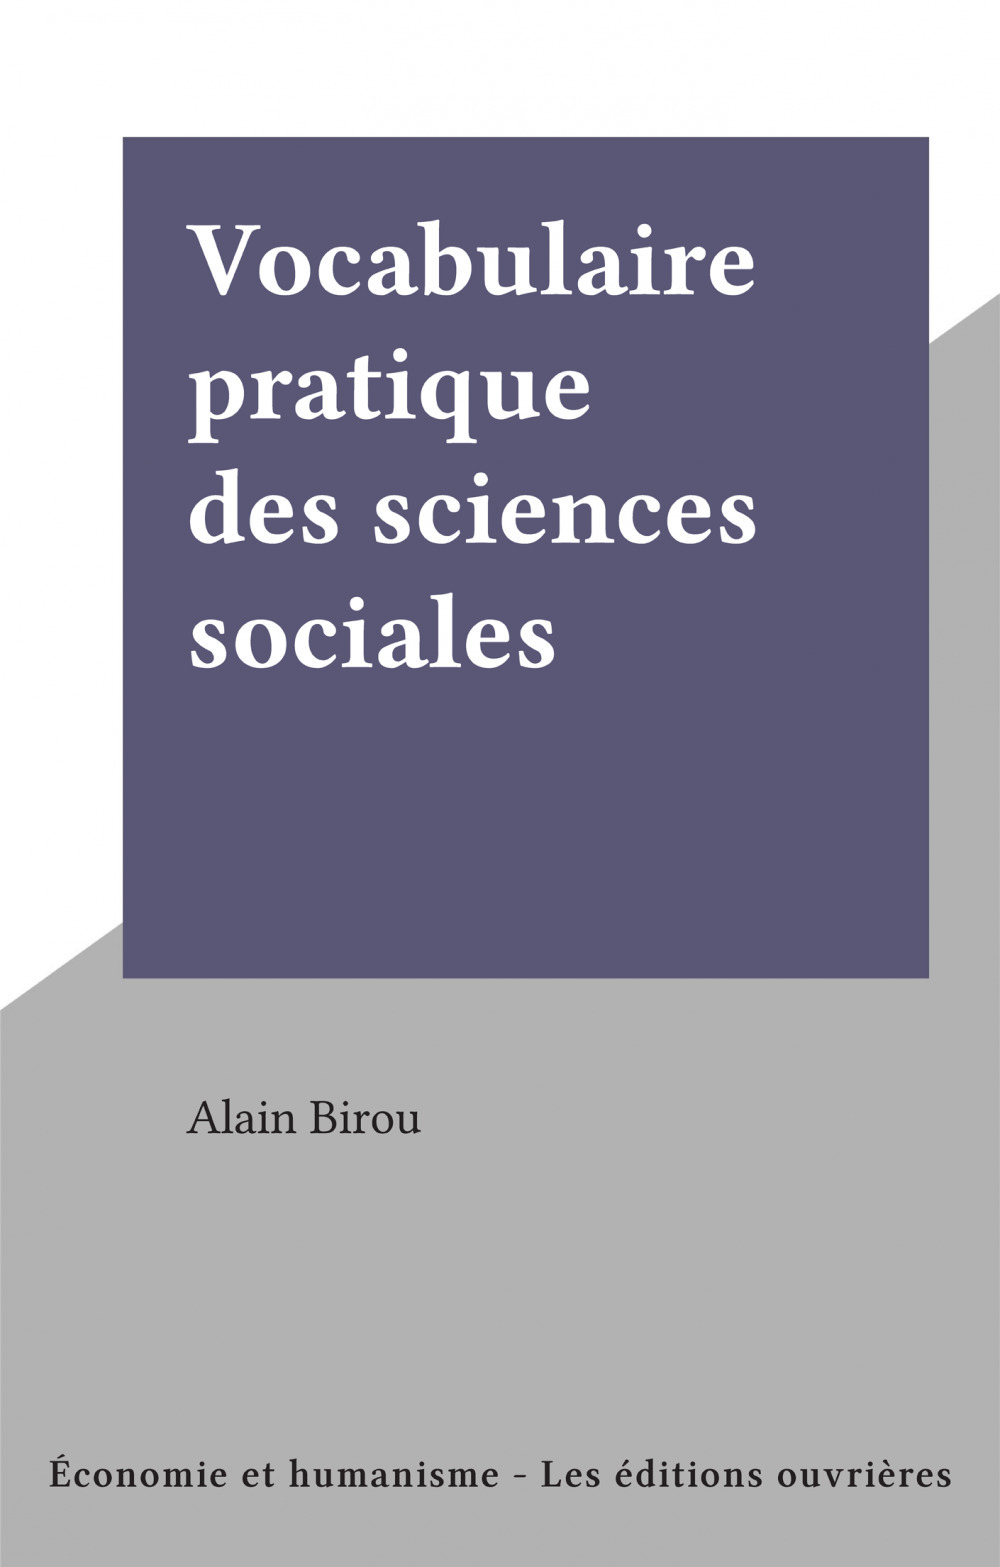 Vocabulaire pratique des sciences sociales